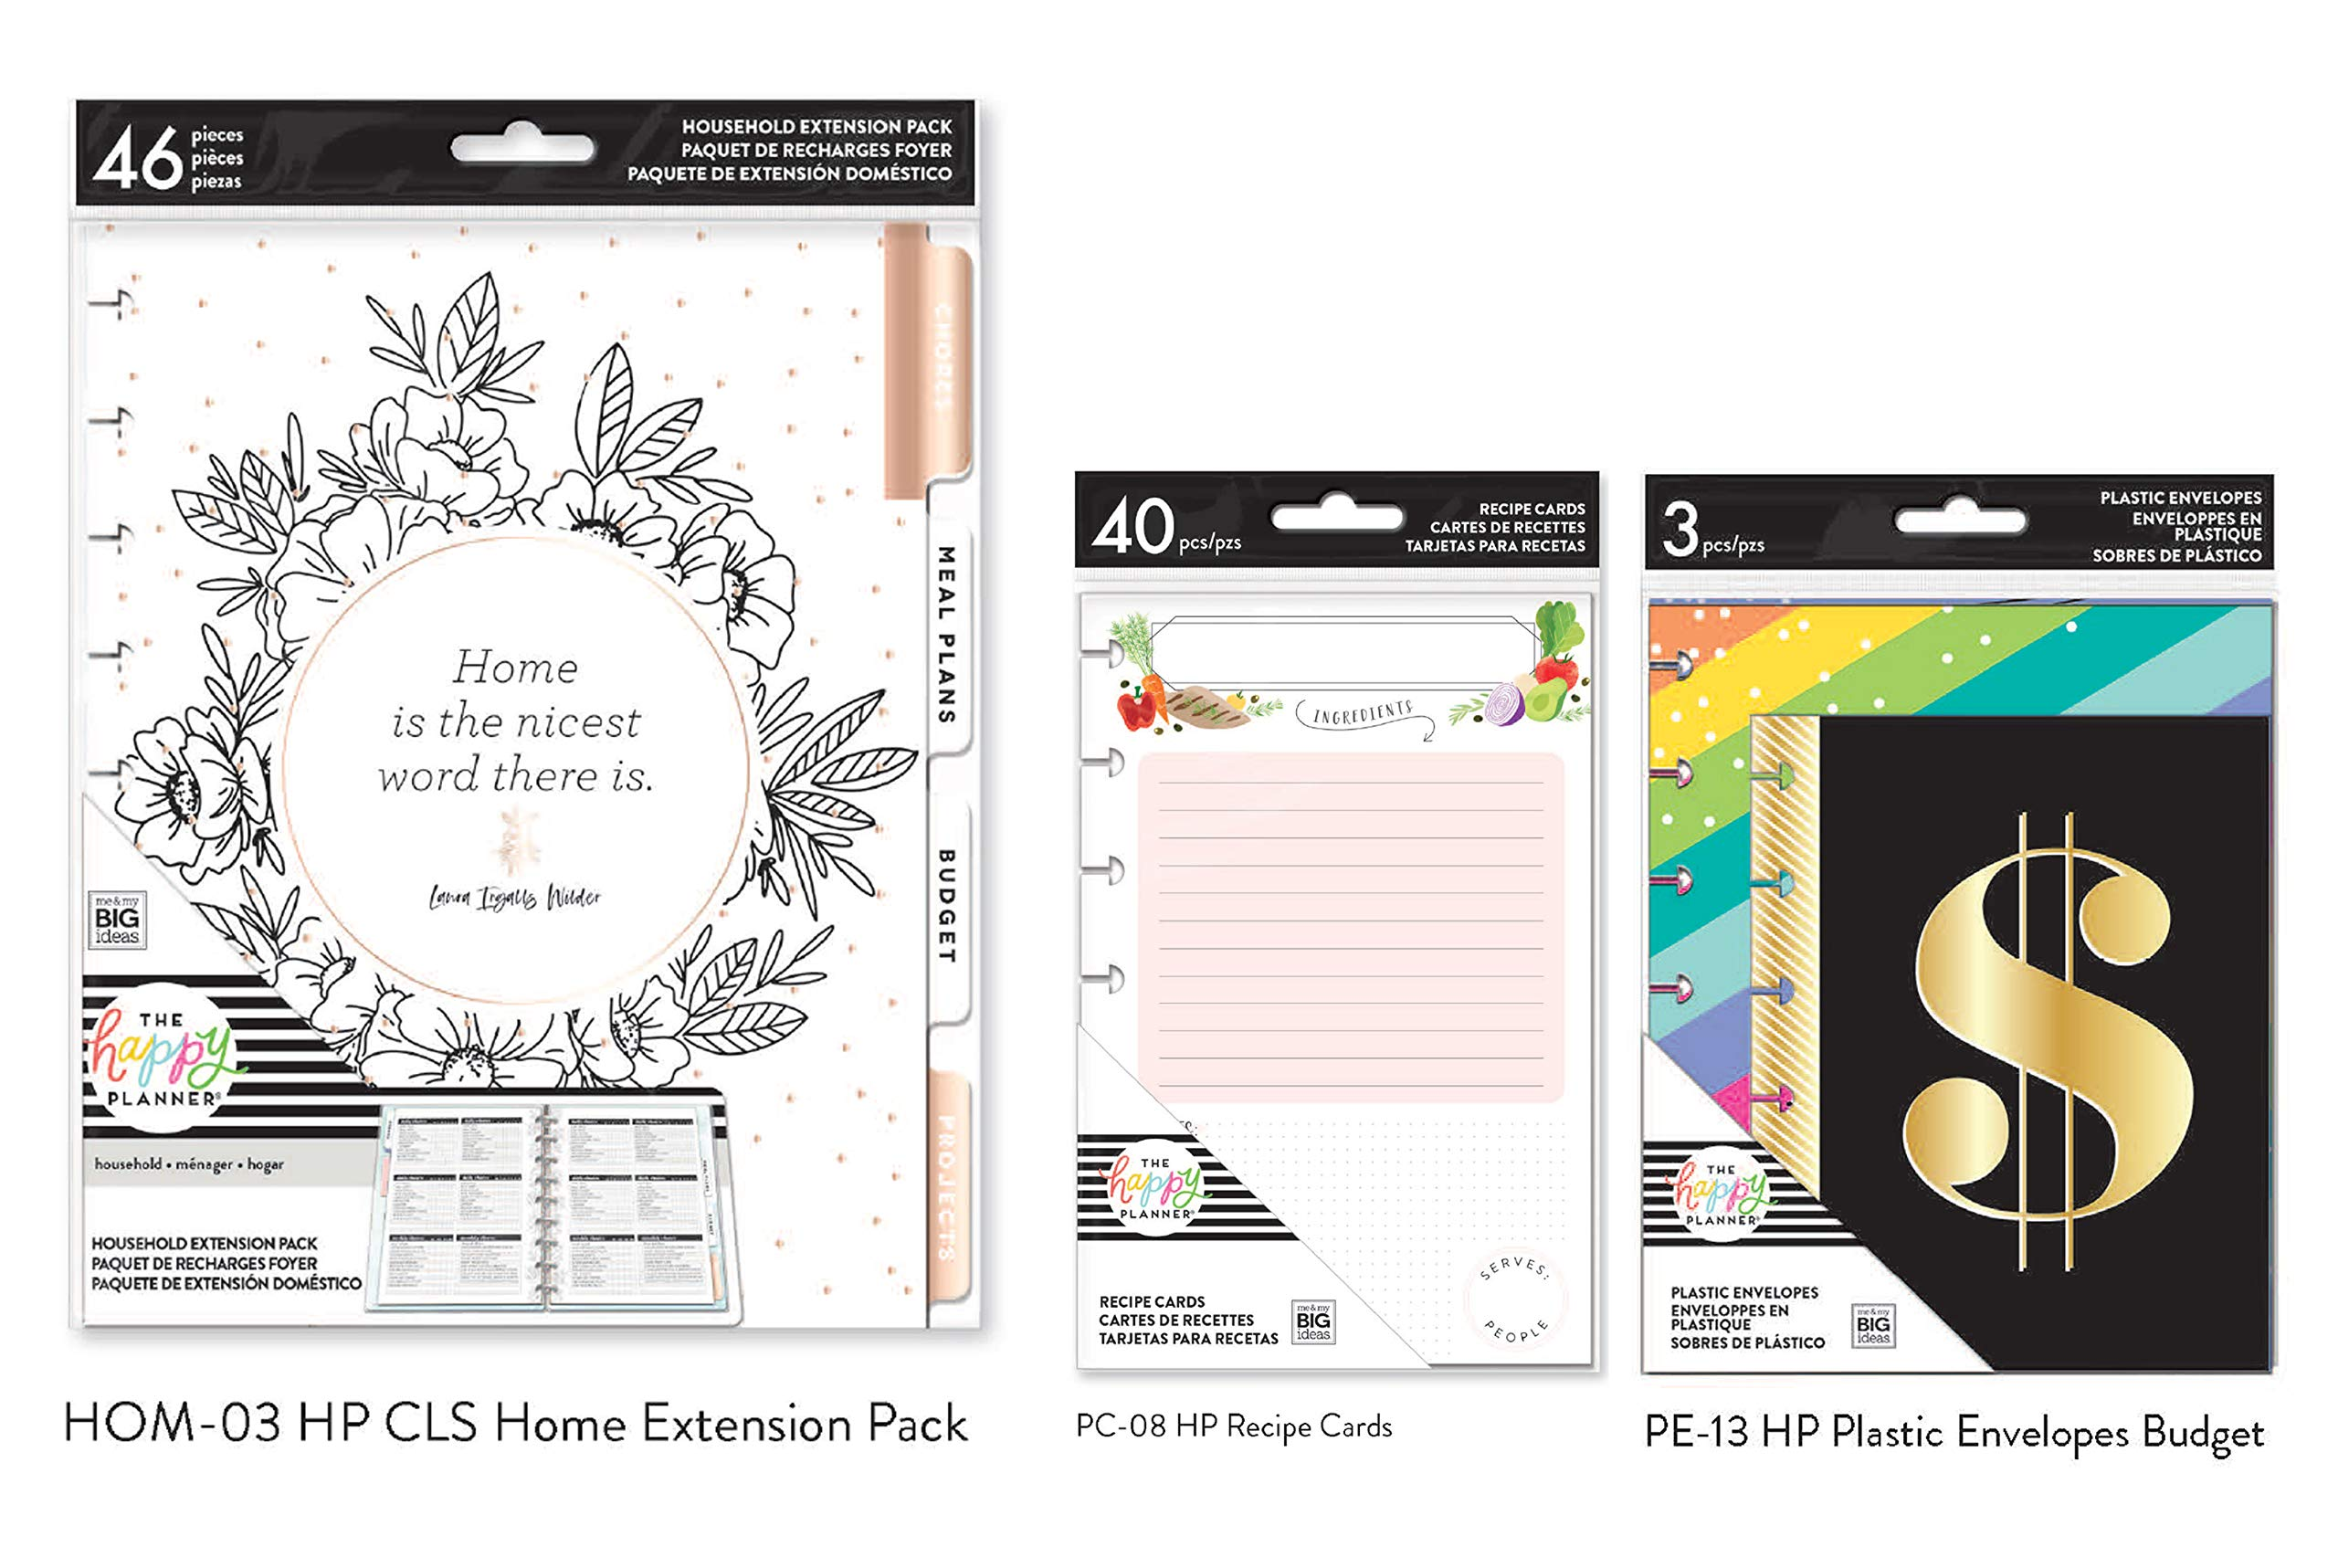 The Happy Planner Home Extension Bundle (Classic/Medium Home Extension Pack, HP Envelopes Budget, HP Recipe Cards) (HOM-03, PC-08, PE-13)(3 Items) by Me & My Big Ideas